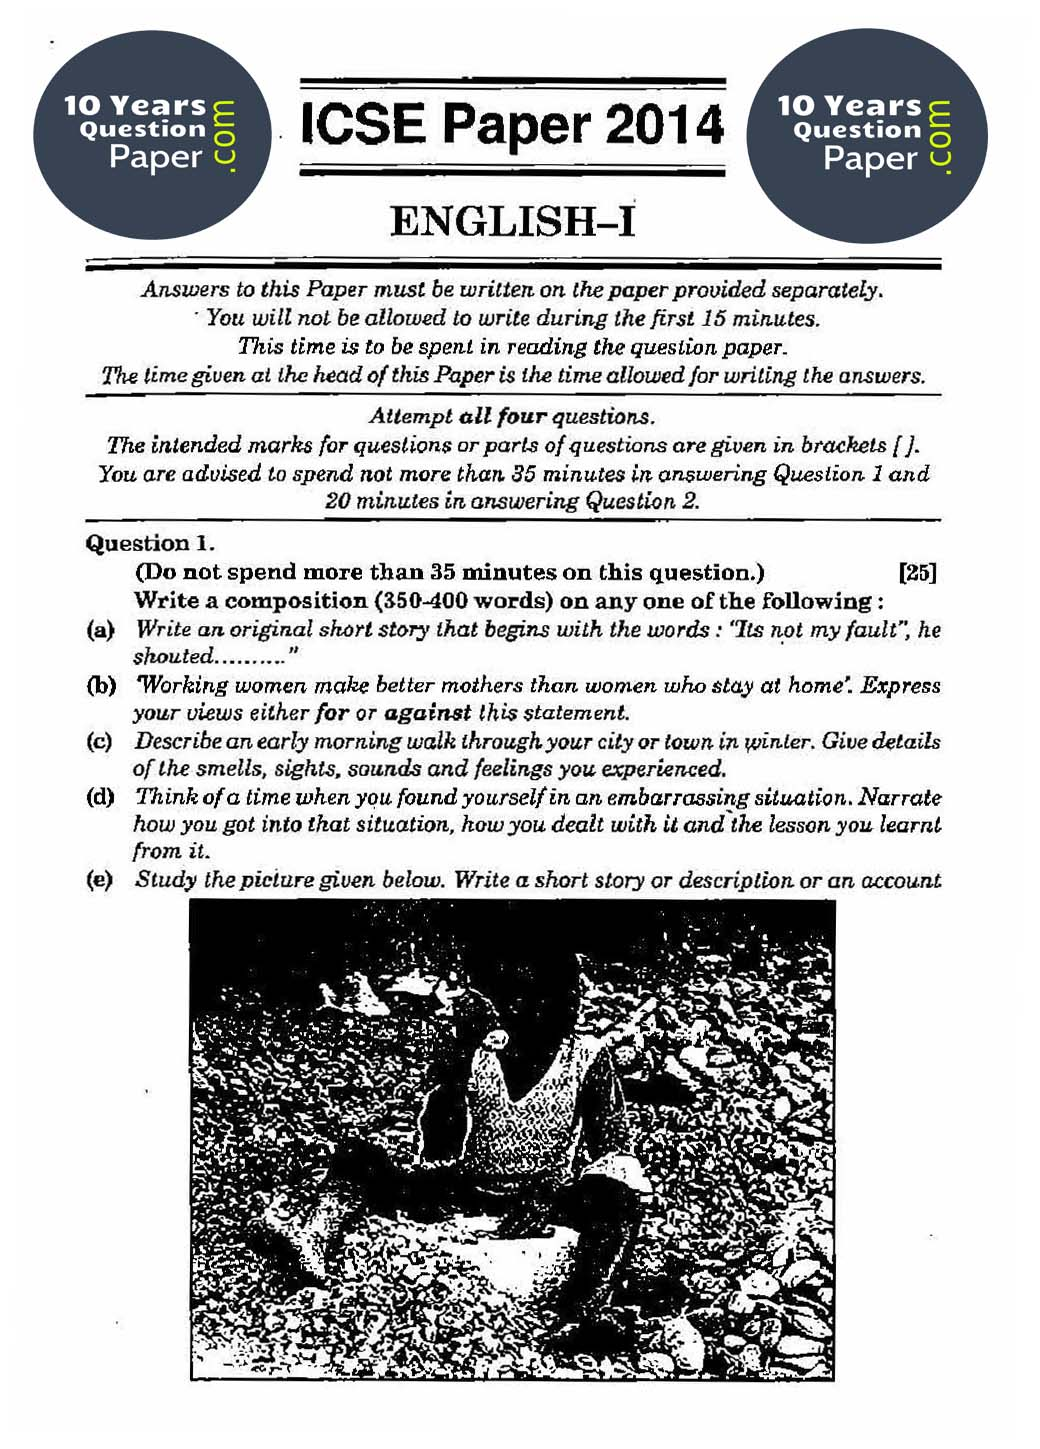 icse 2014 class 10th english paper 1 solved question paper